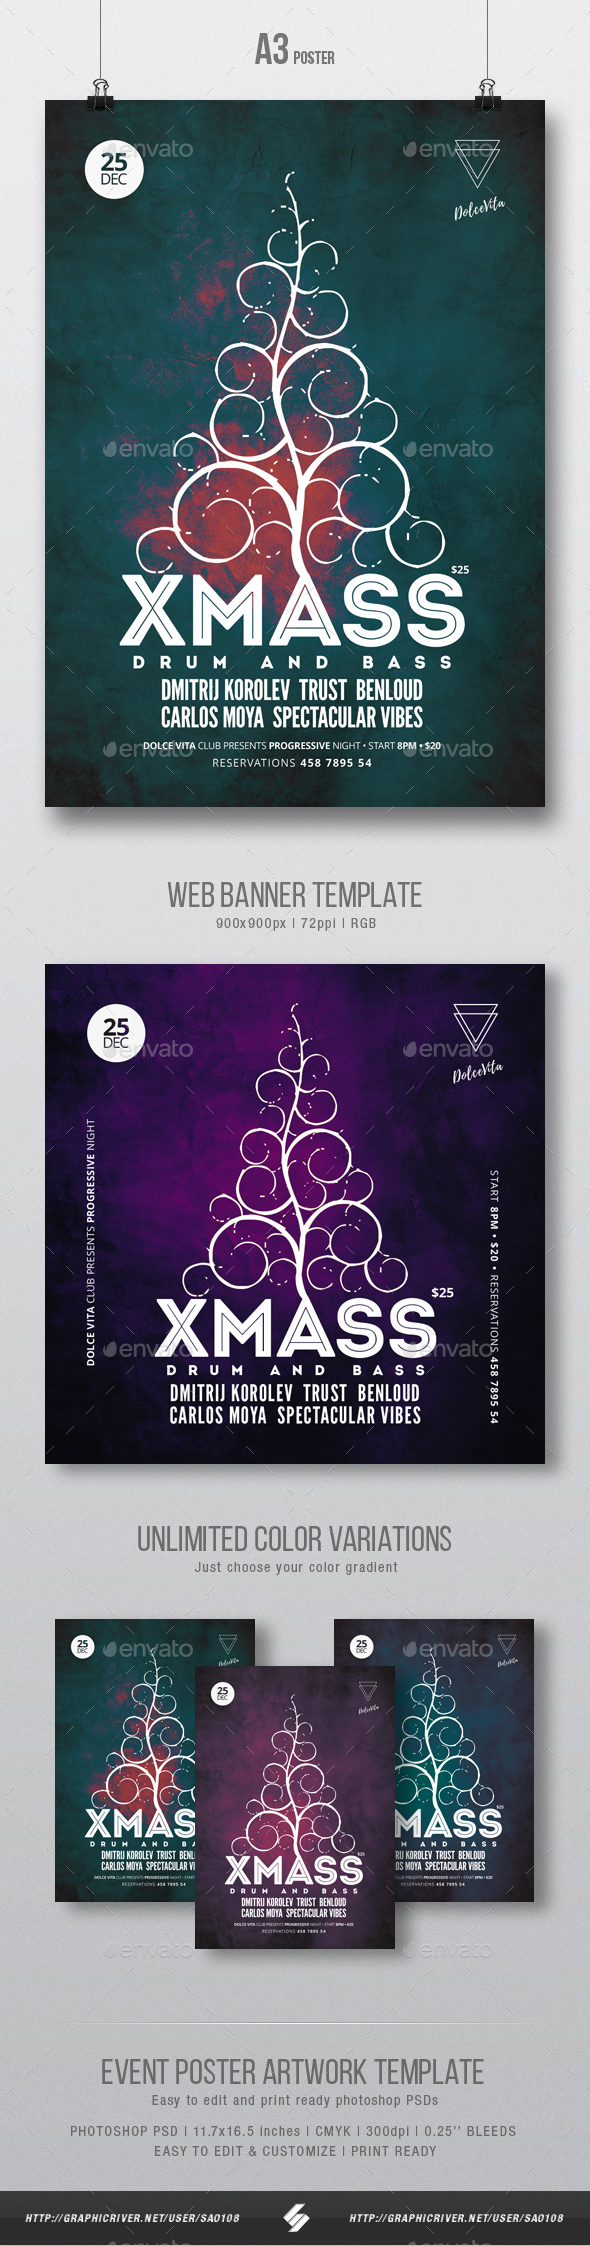 Xmass - Party Flyer / Poster Artwork Template A3 - Clubs & Parties Events